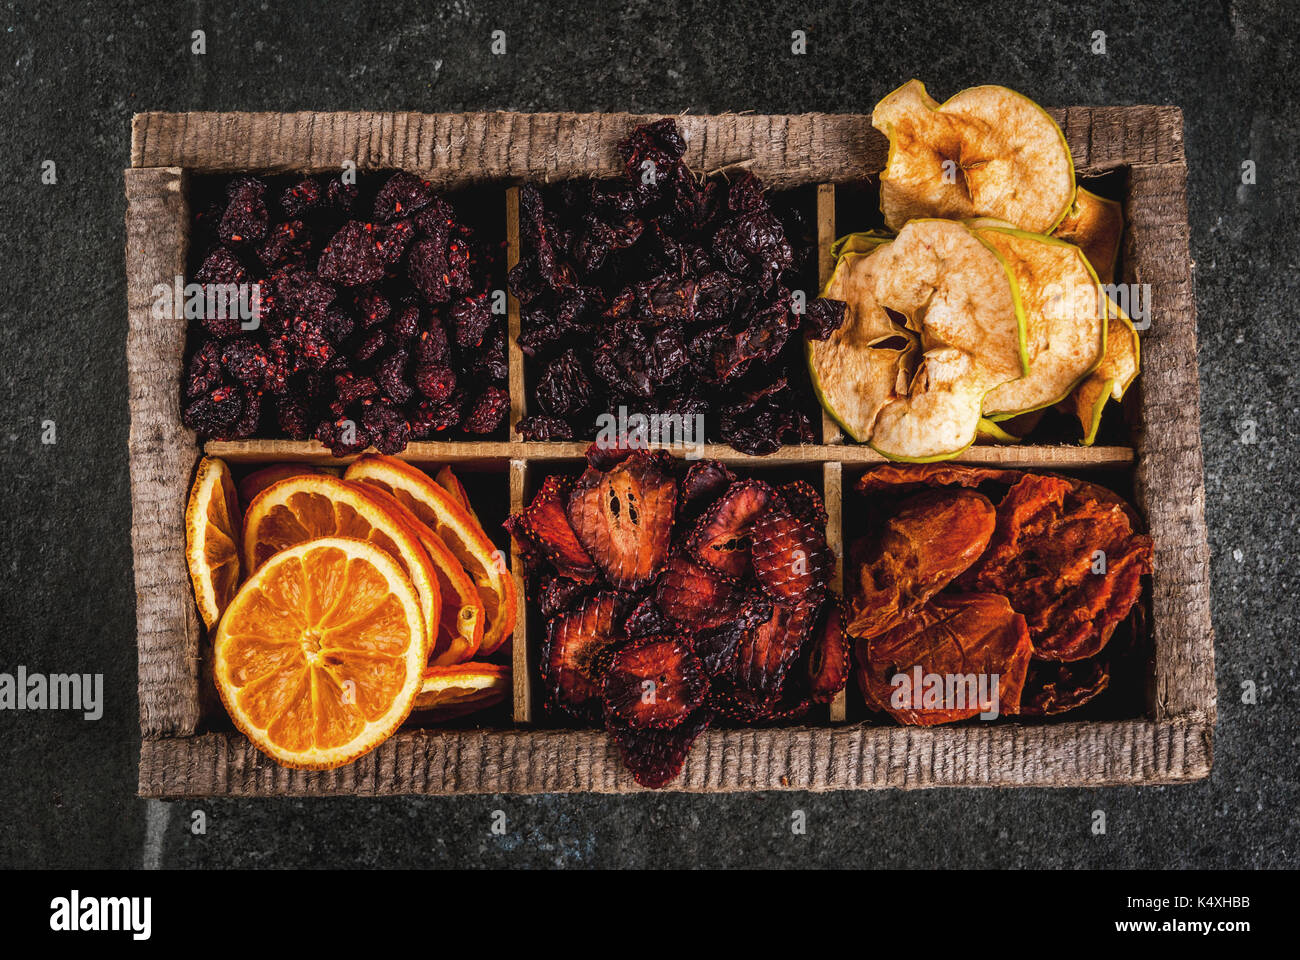 Homemade dried berries and fruits, harvest for the winter: apricots, apples, strawberries, raspberries, cherries, oranges. In old wooden box, on black - Stock Image